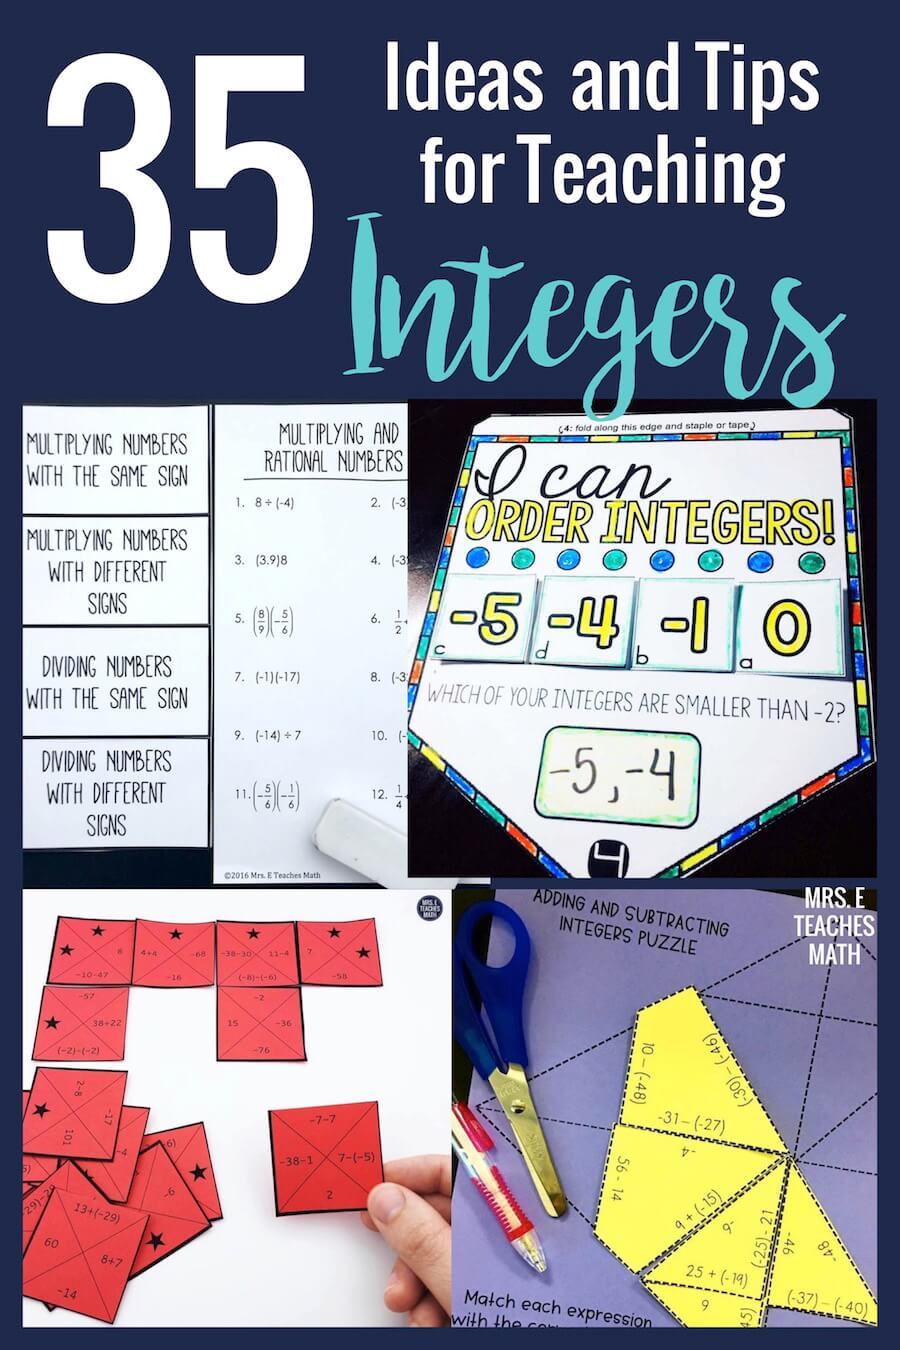 35+ Ideas and Tips for Teaching Integers   Mrs. E Teaches Math [ 1350 x 900 Pixel ]